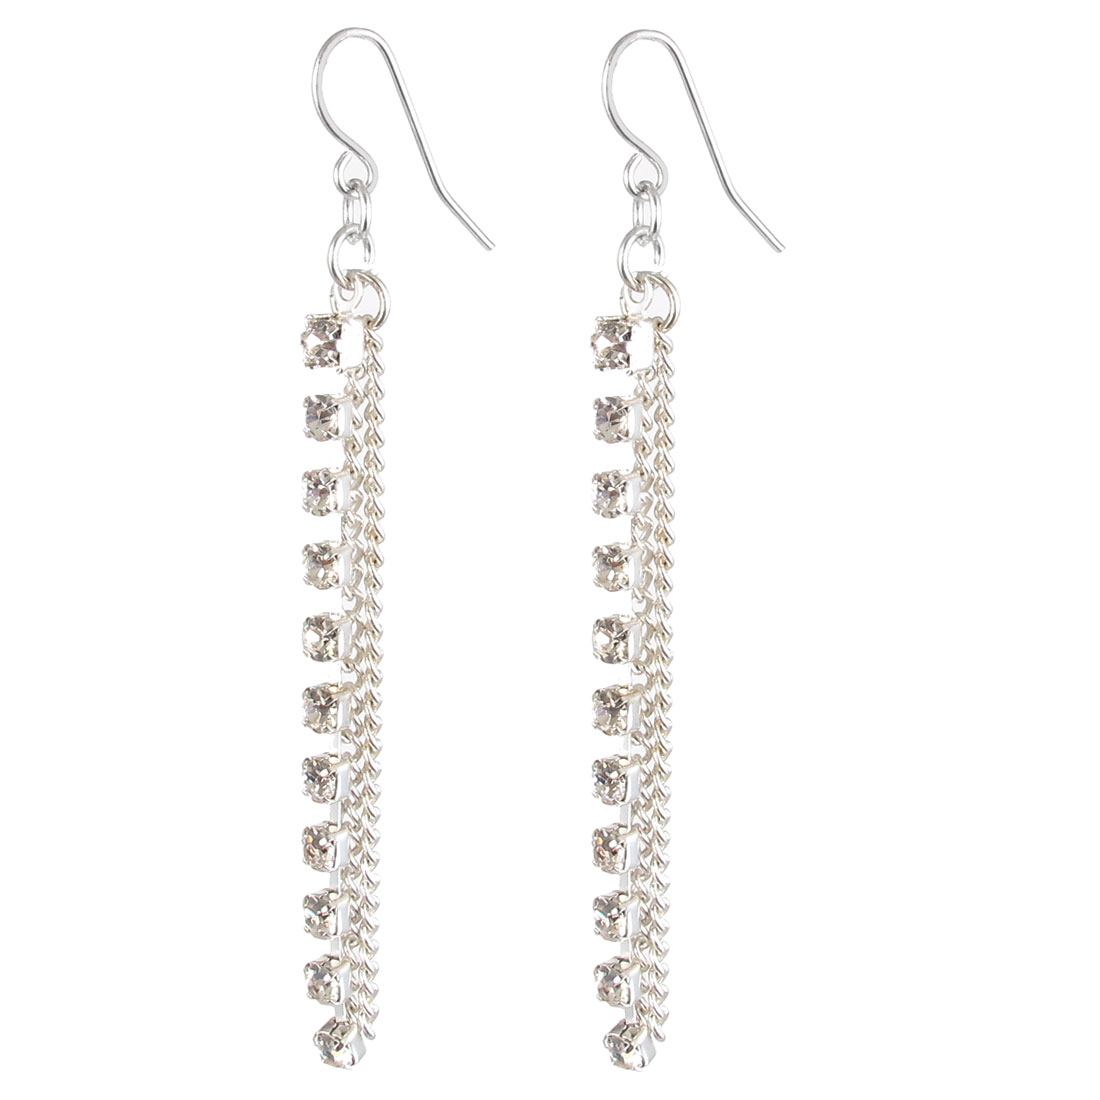 "Women Plastic Diamante Inlaid Chain Tassels Dangling Pendant Metal Fish Hook Earrings Earbob Silver Tone 2.8"" Length Pair"